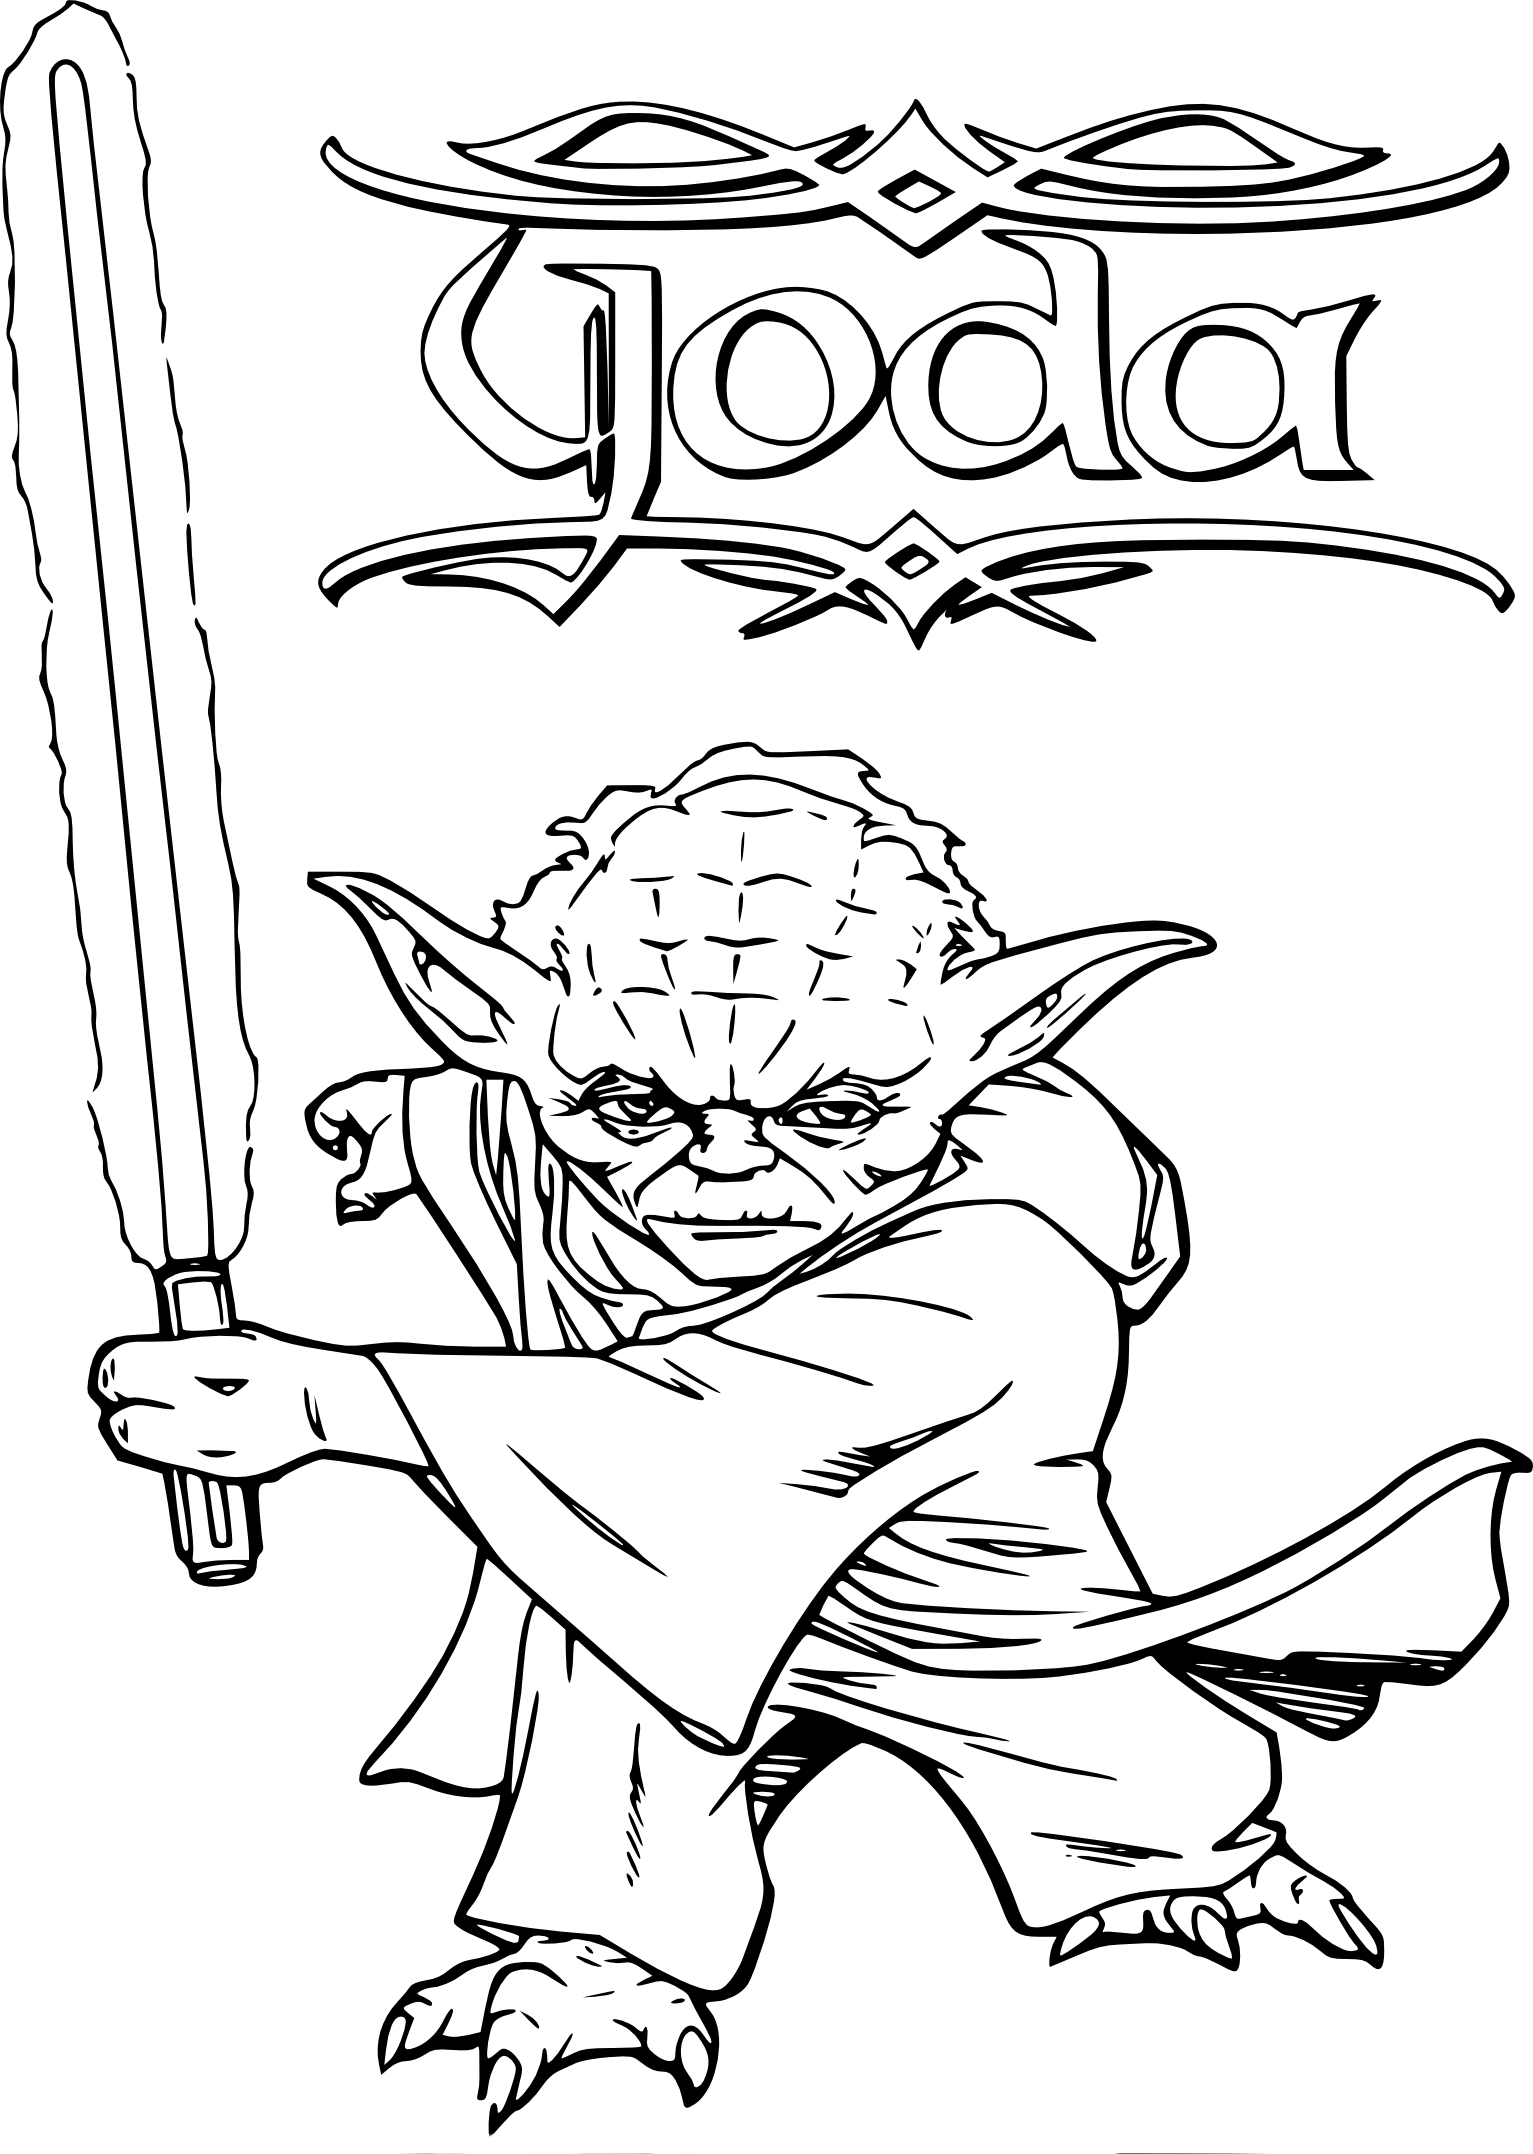 yoda christmas coloring page | step 10 how to draw yoda hand and